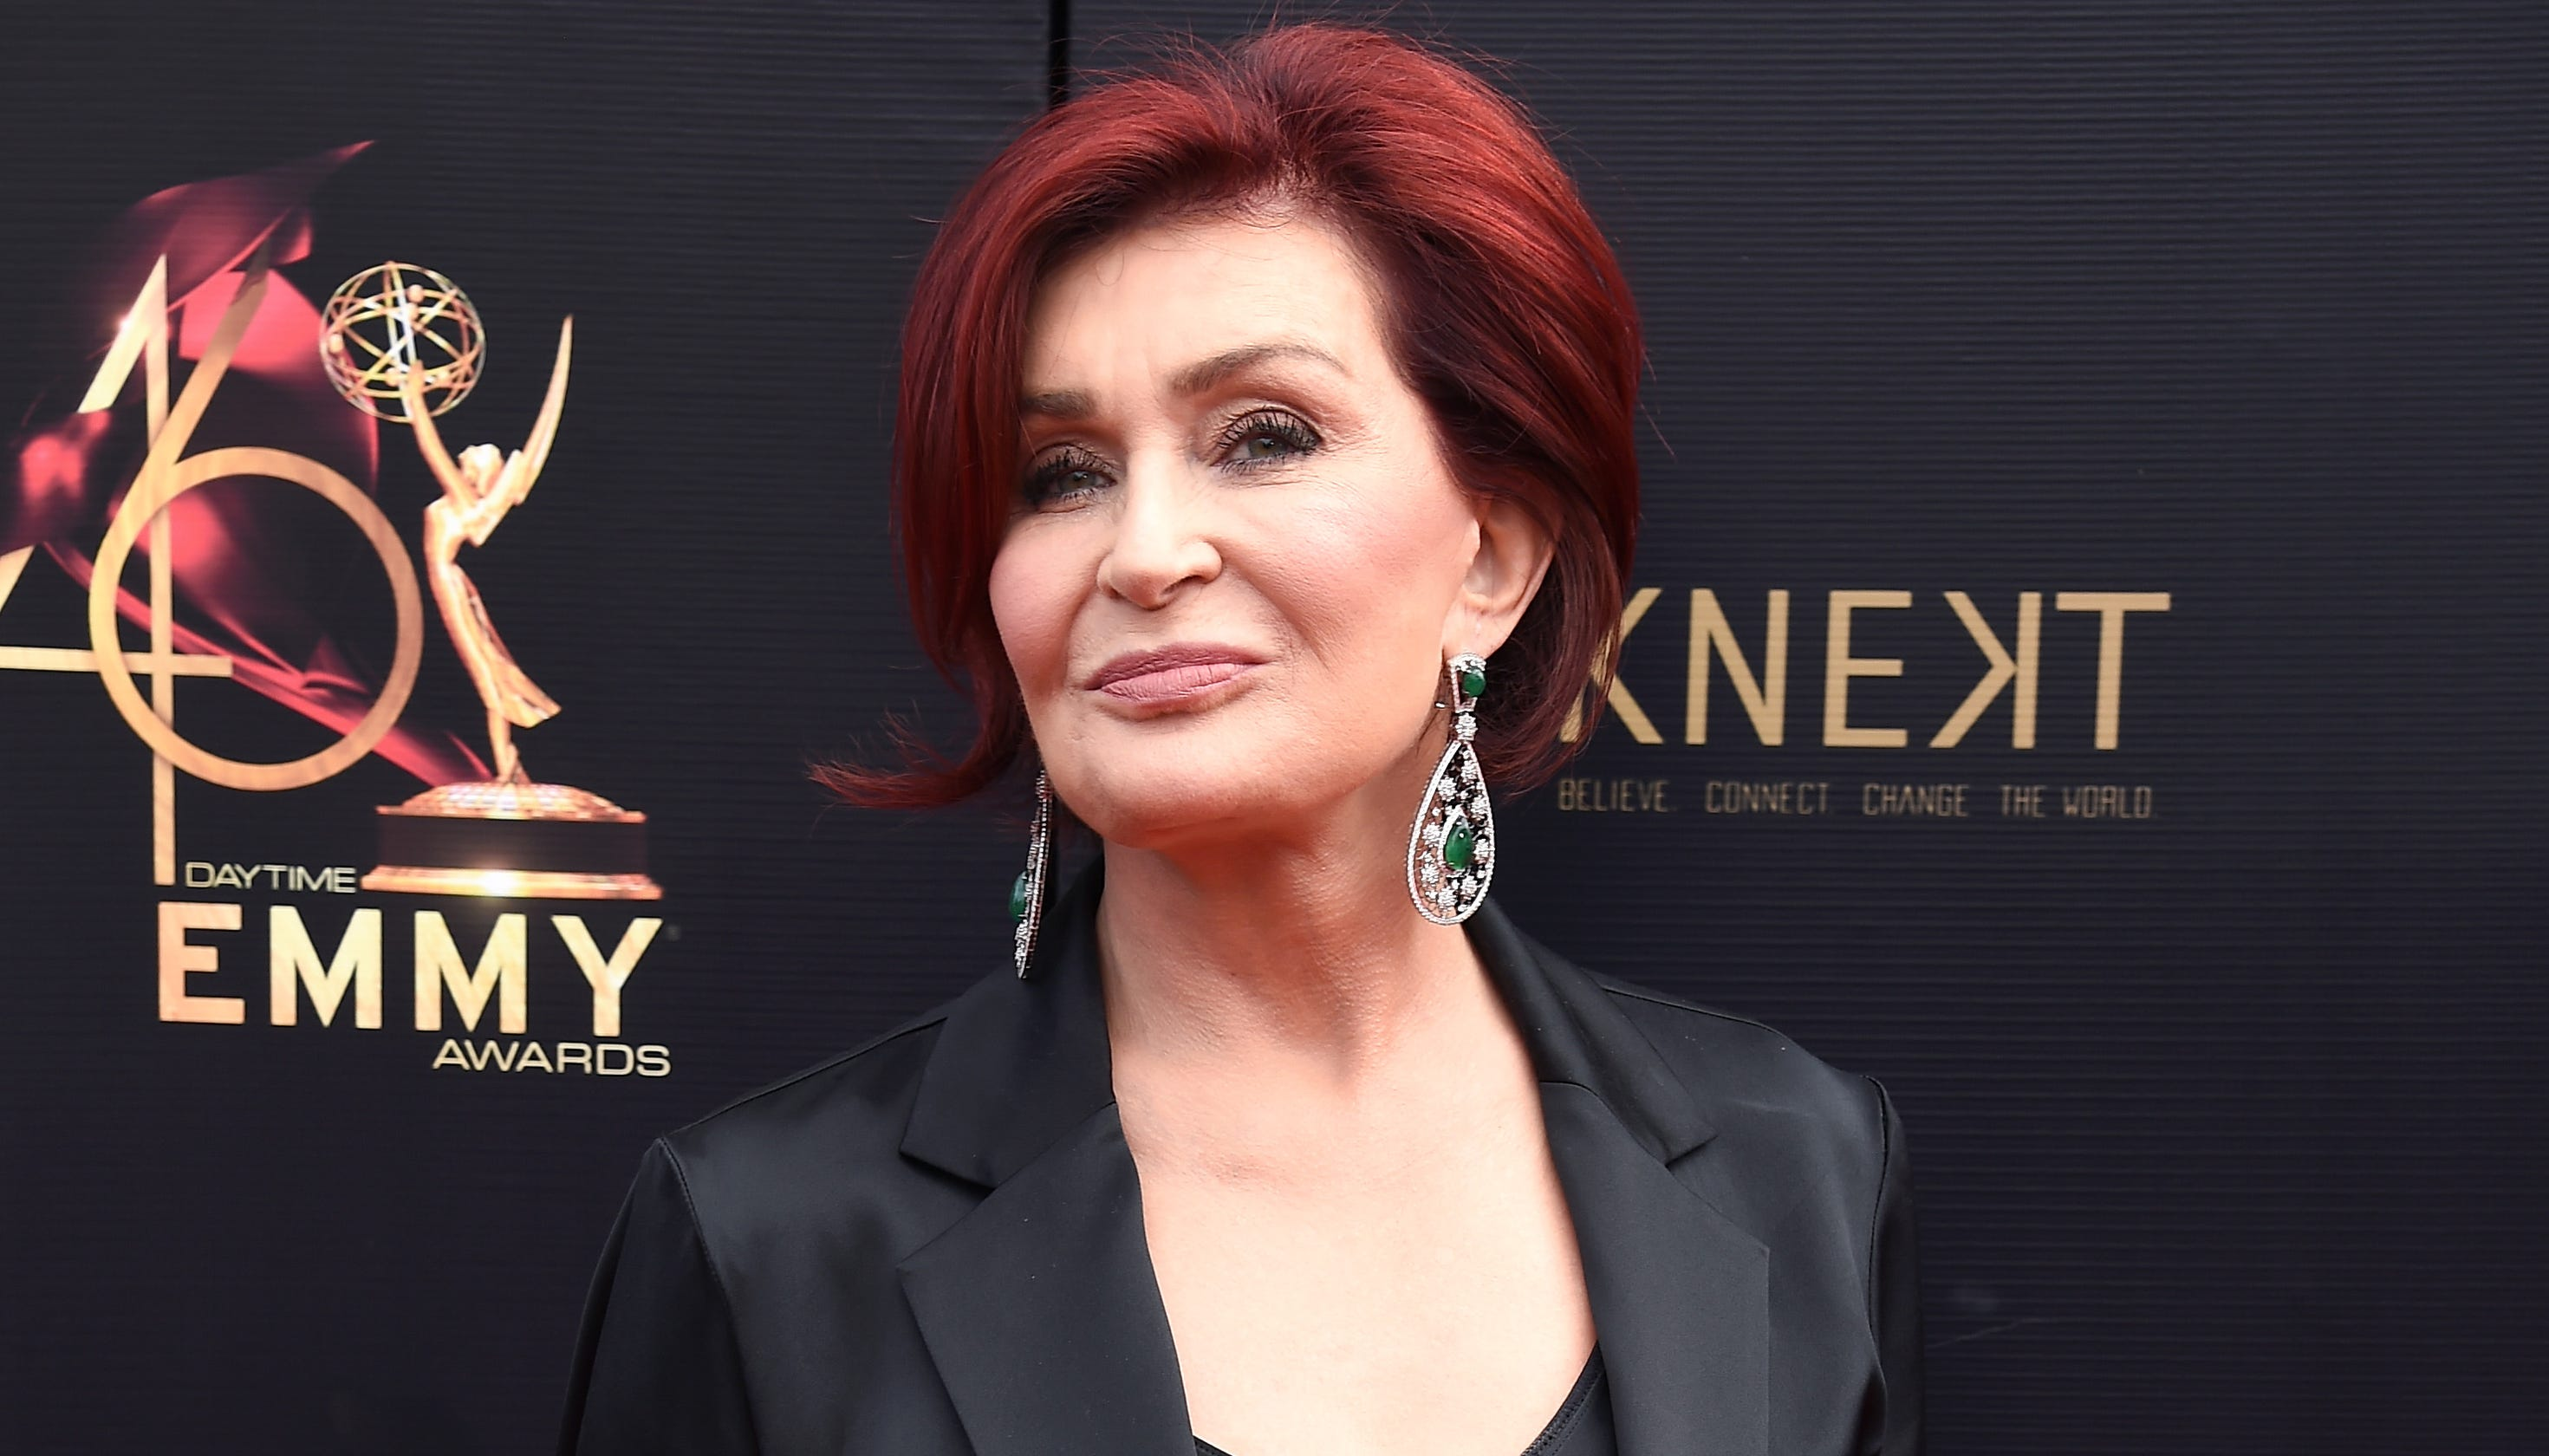 Sharon Osbourne Has Big Plans For Her Summer: 'A New Face